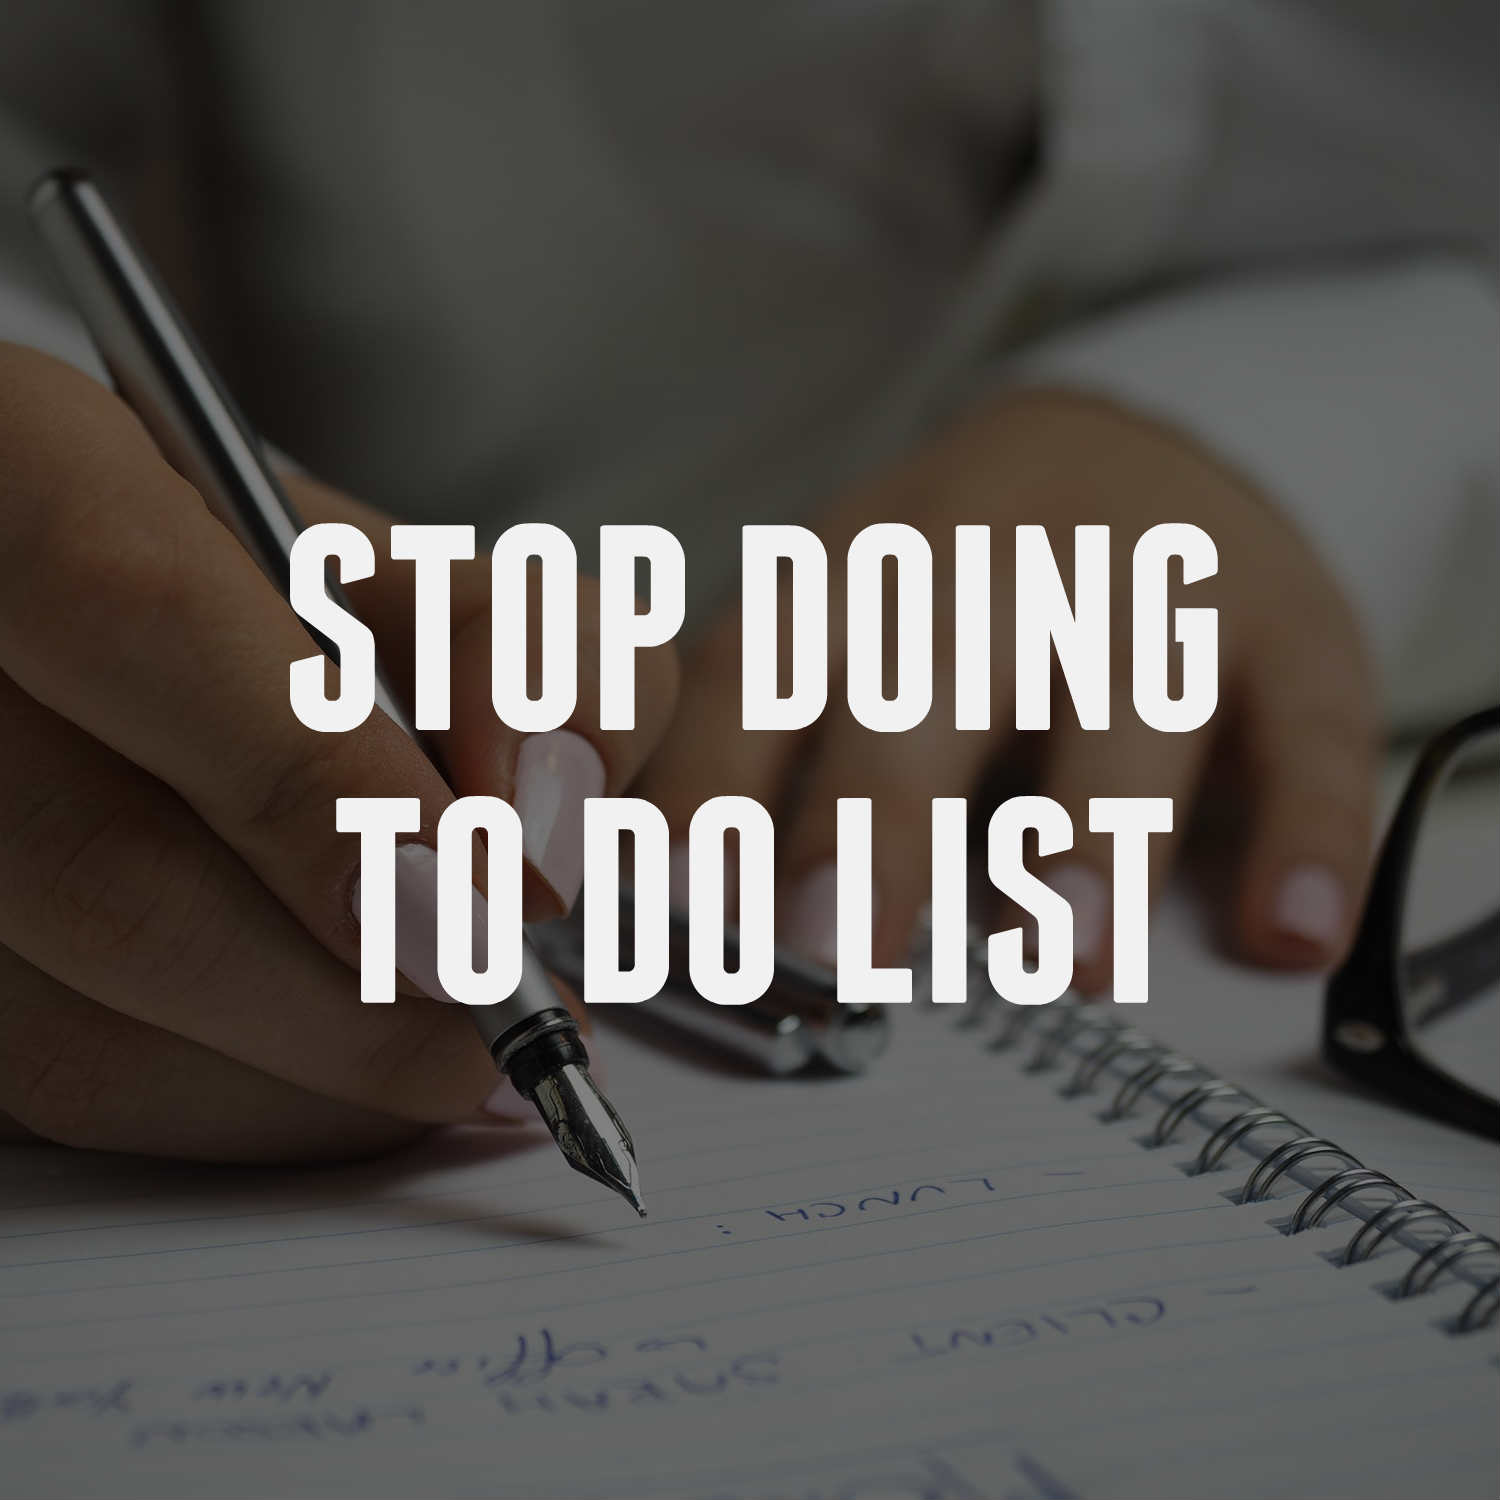 STOP DOING TO DO LIST